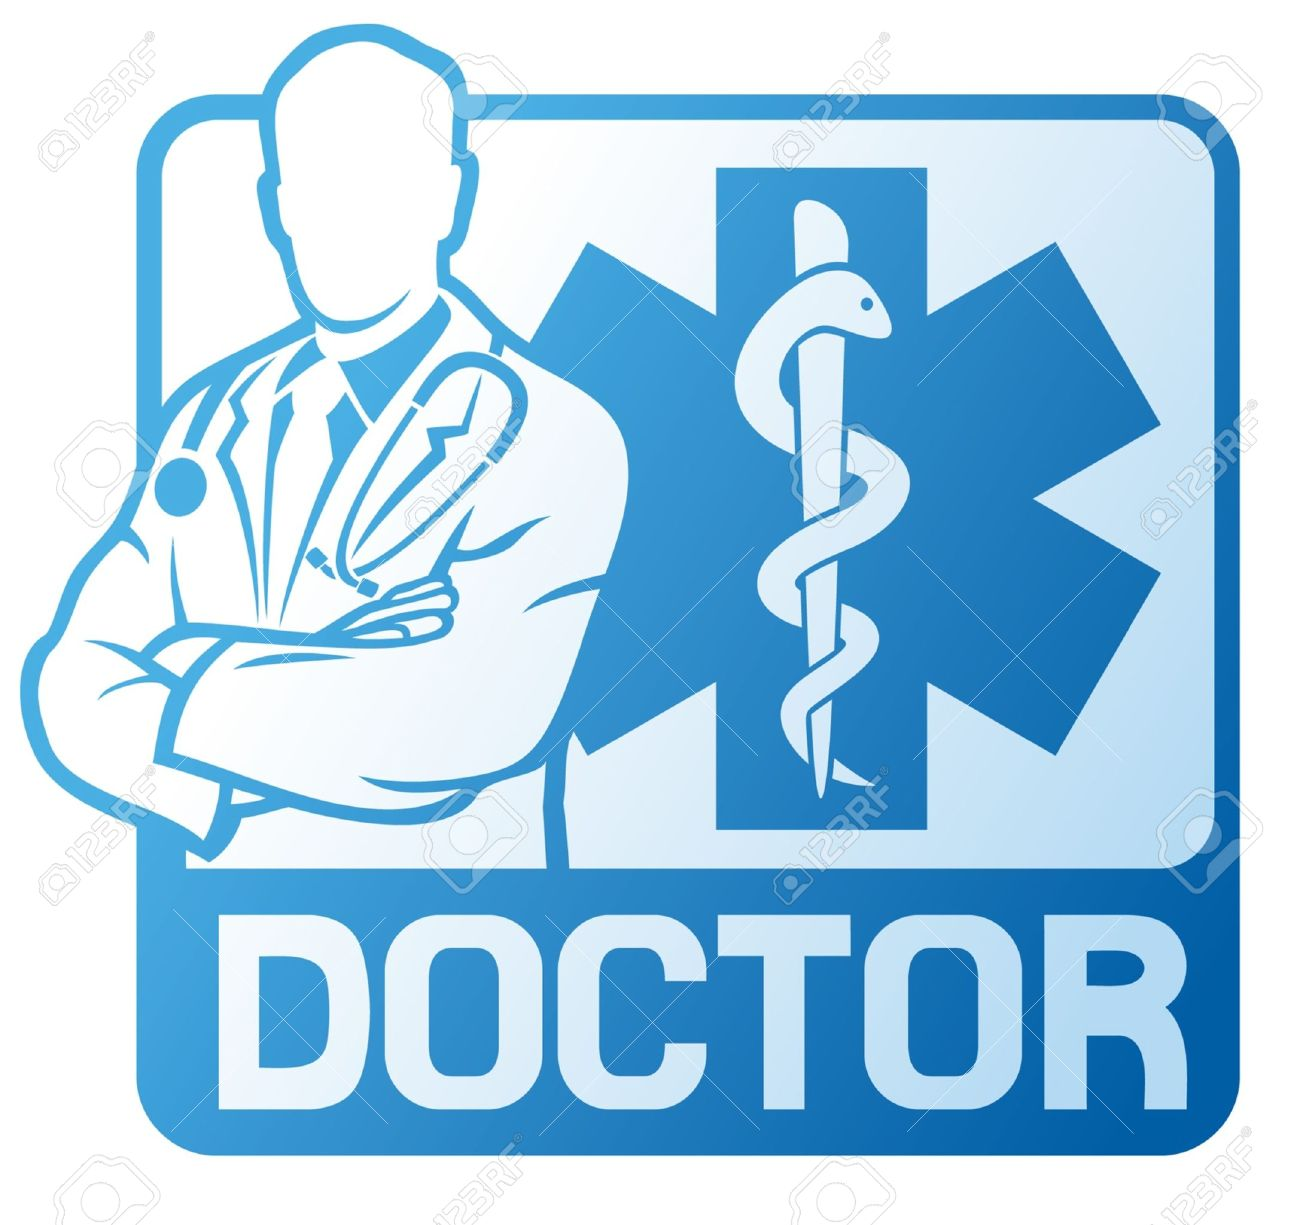 Medical doctor symbol medical symbol caduceus snake with stick medical doctor symbol medical symbol caduceus snake with stick medicine emblem blue medical sign buycottarizona Image collections